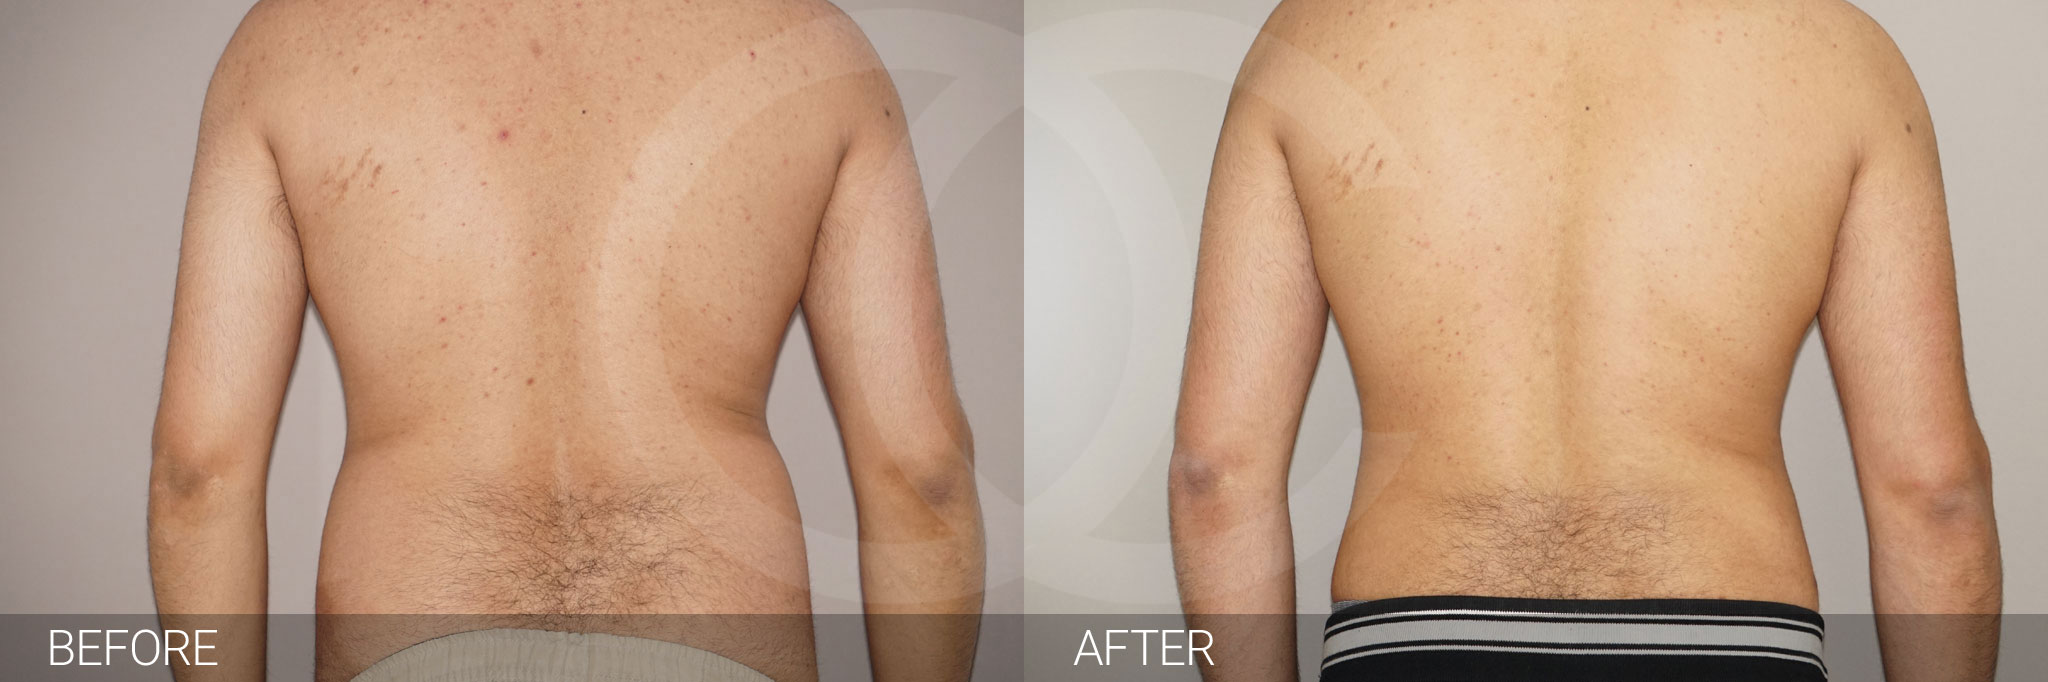 Liposuction Male surgery ante/post-op III